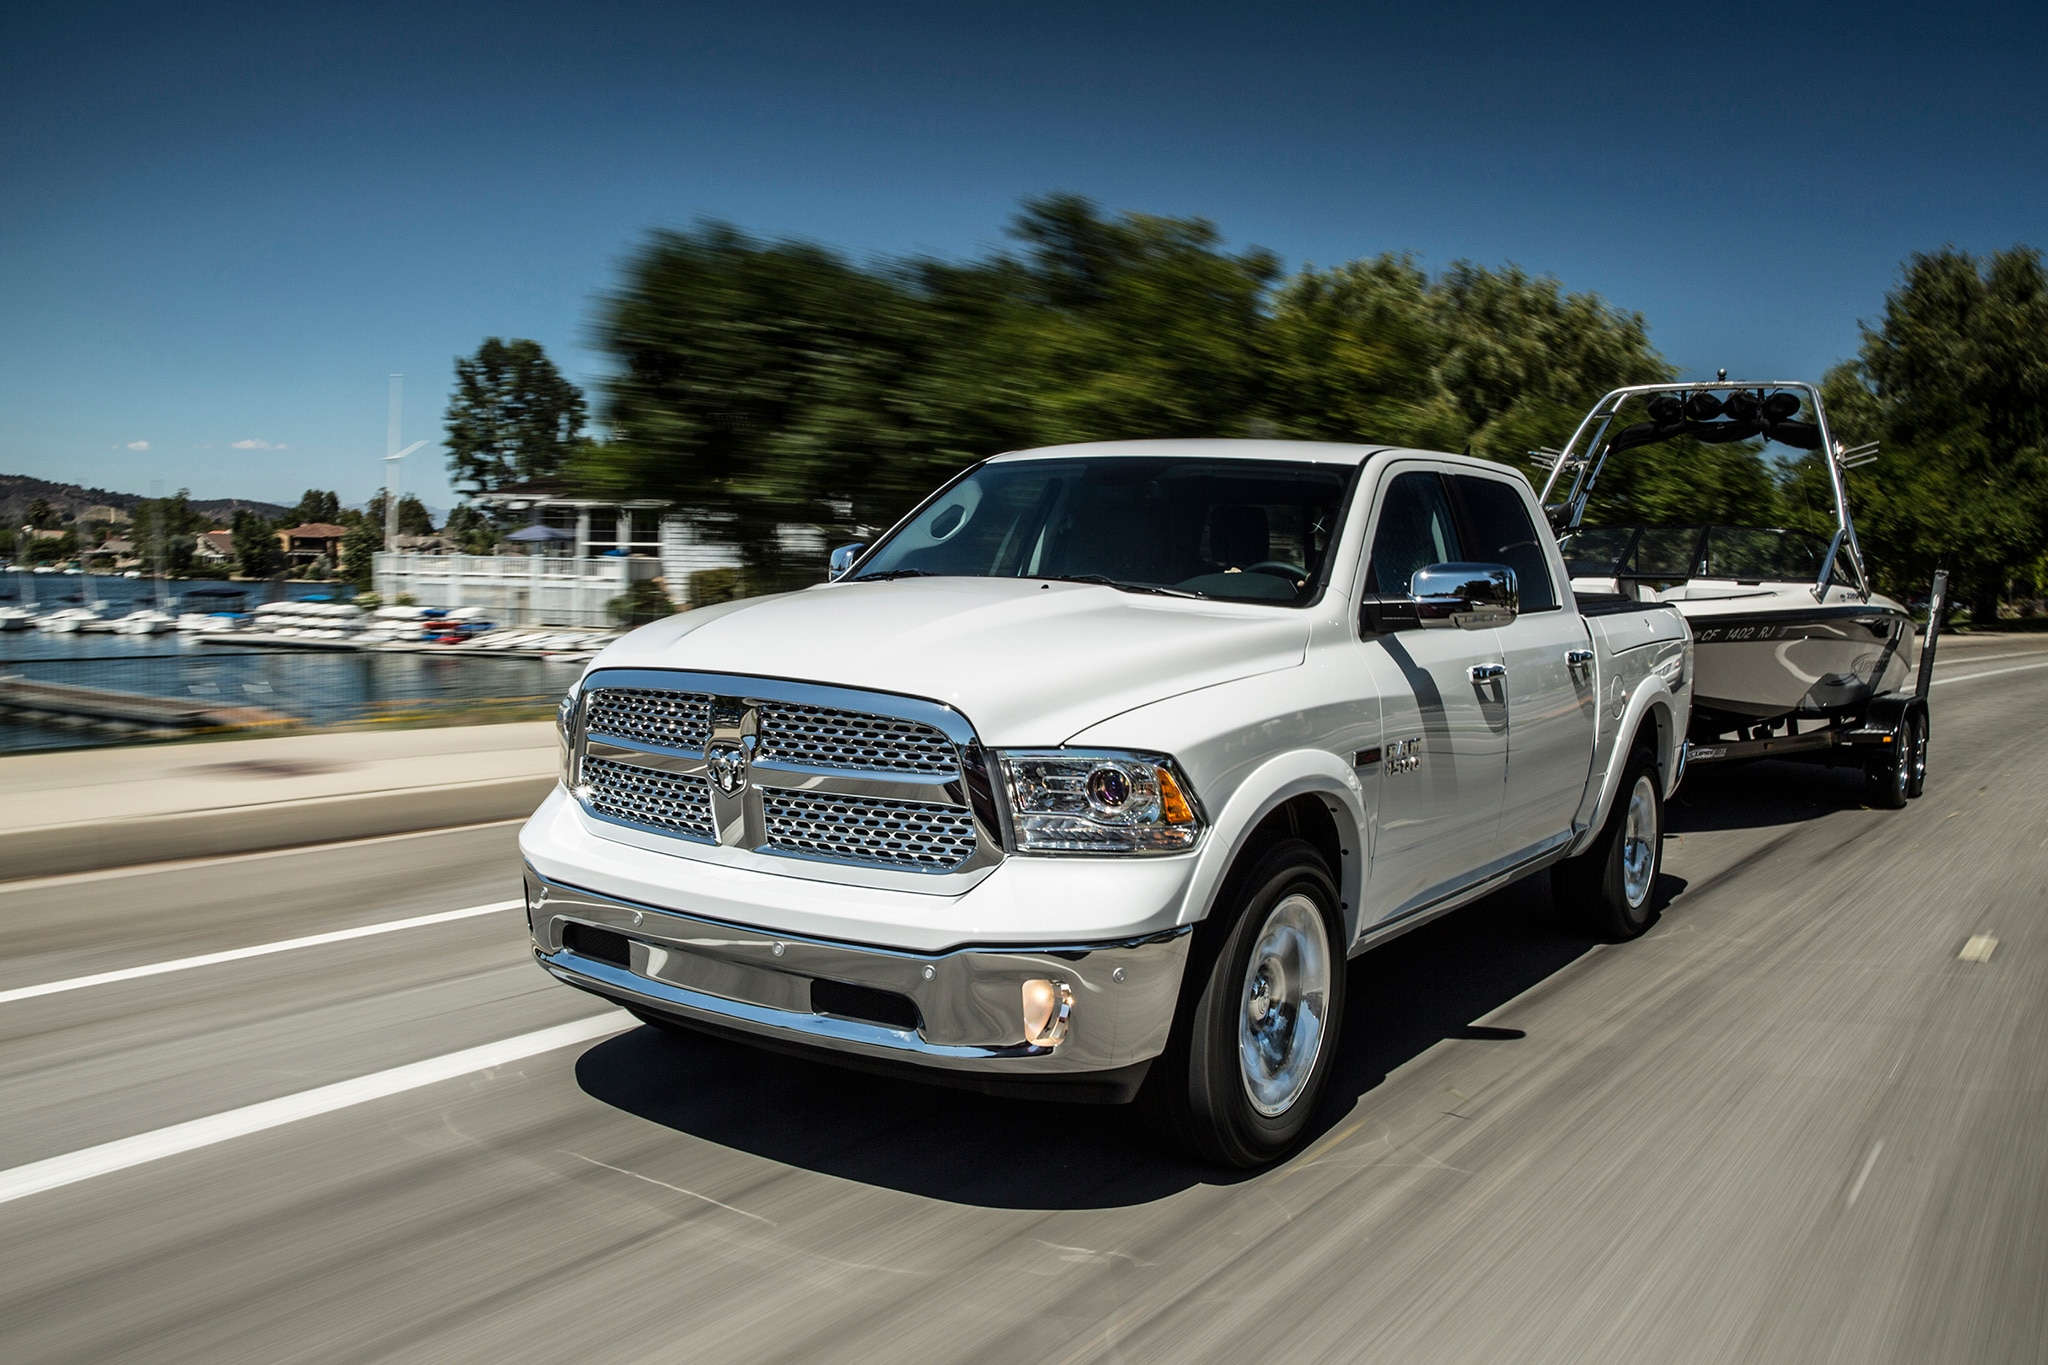 2017 Dodge Ram 1500 Ecosel Review Auto Express